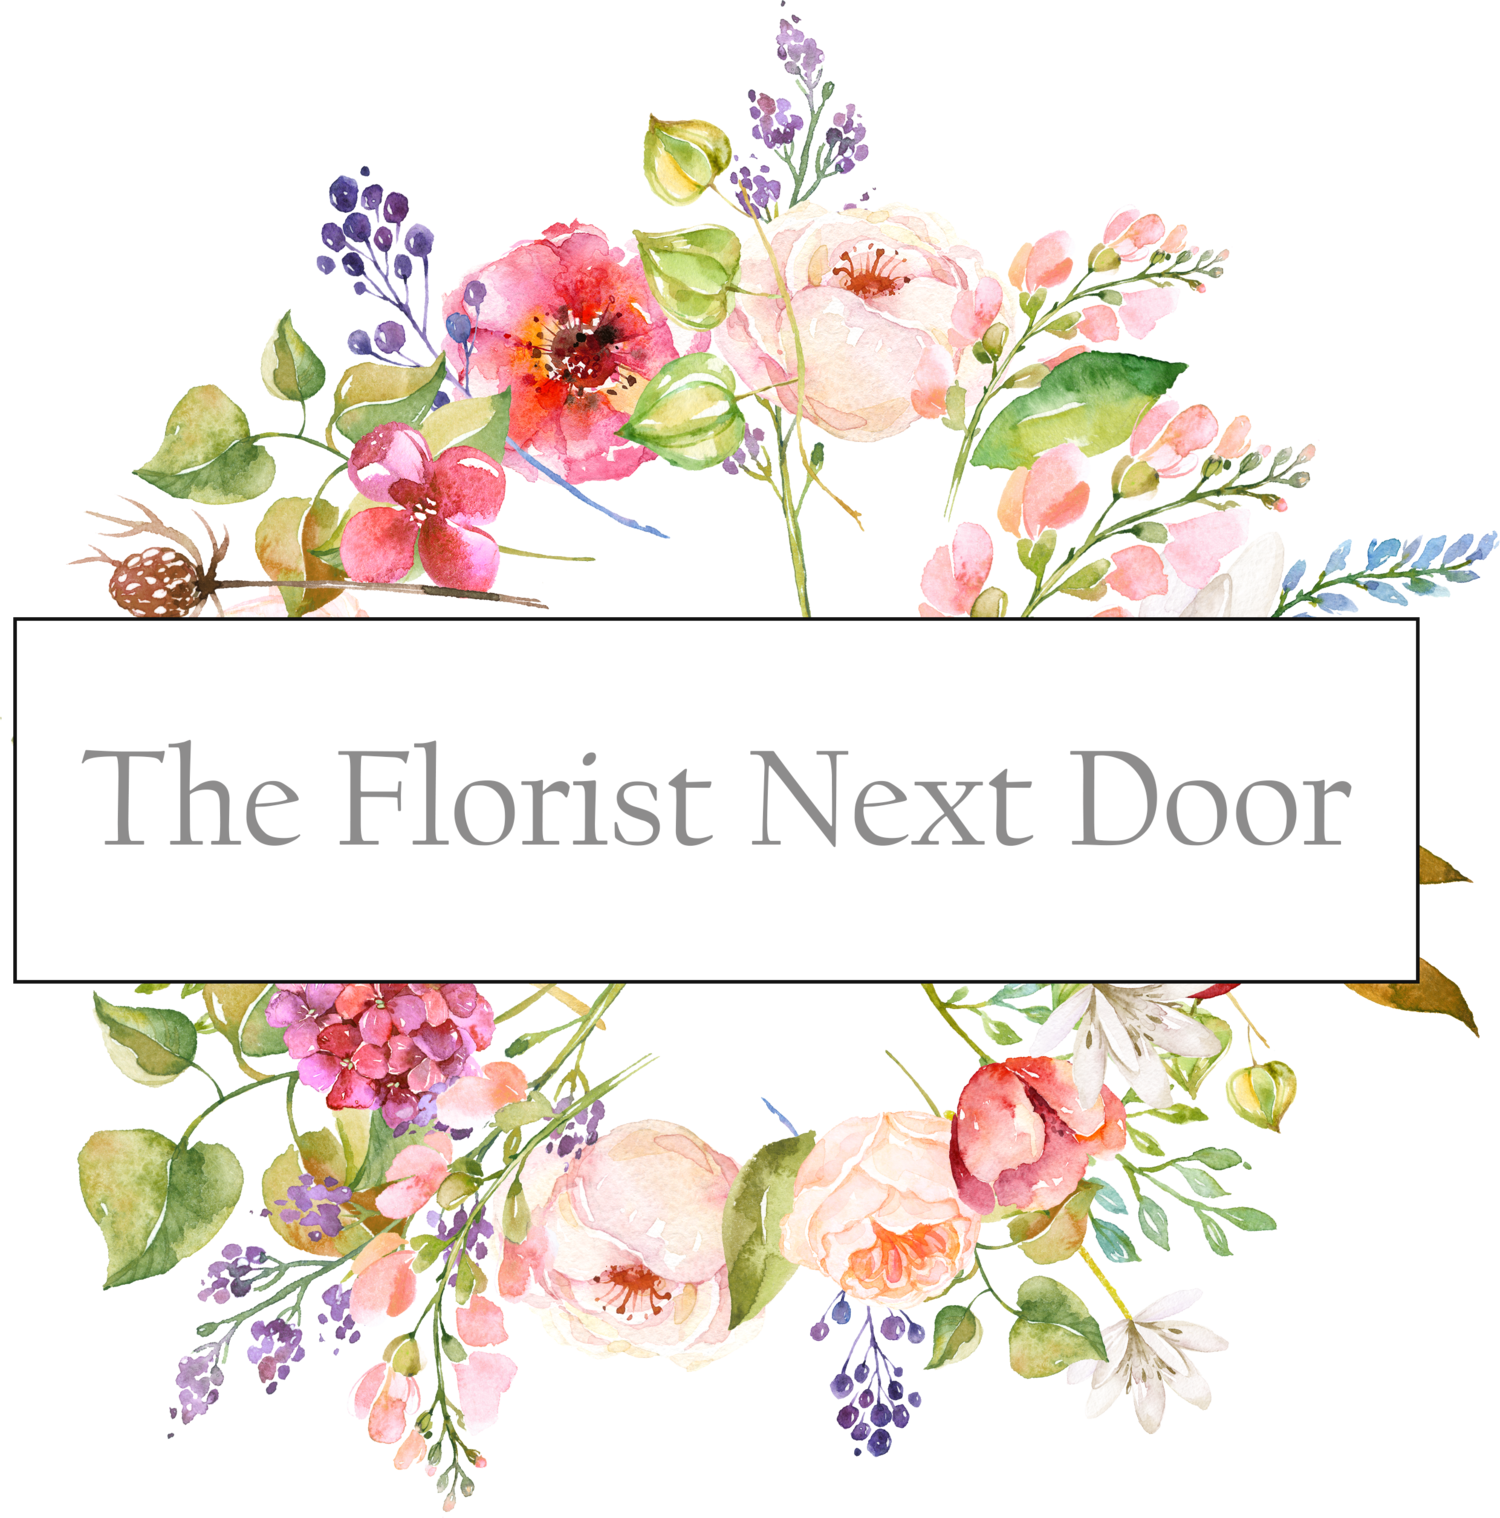 The Florist Next Door